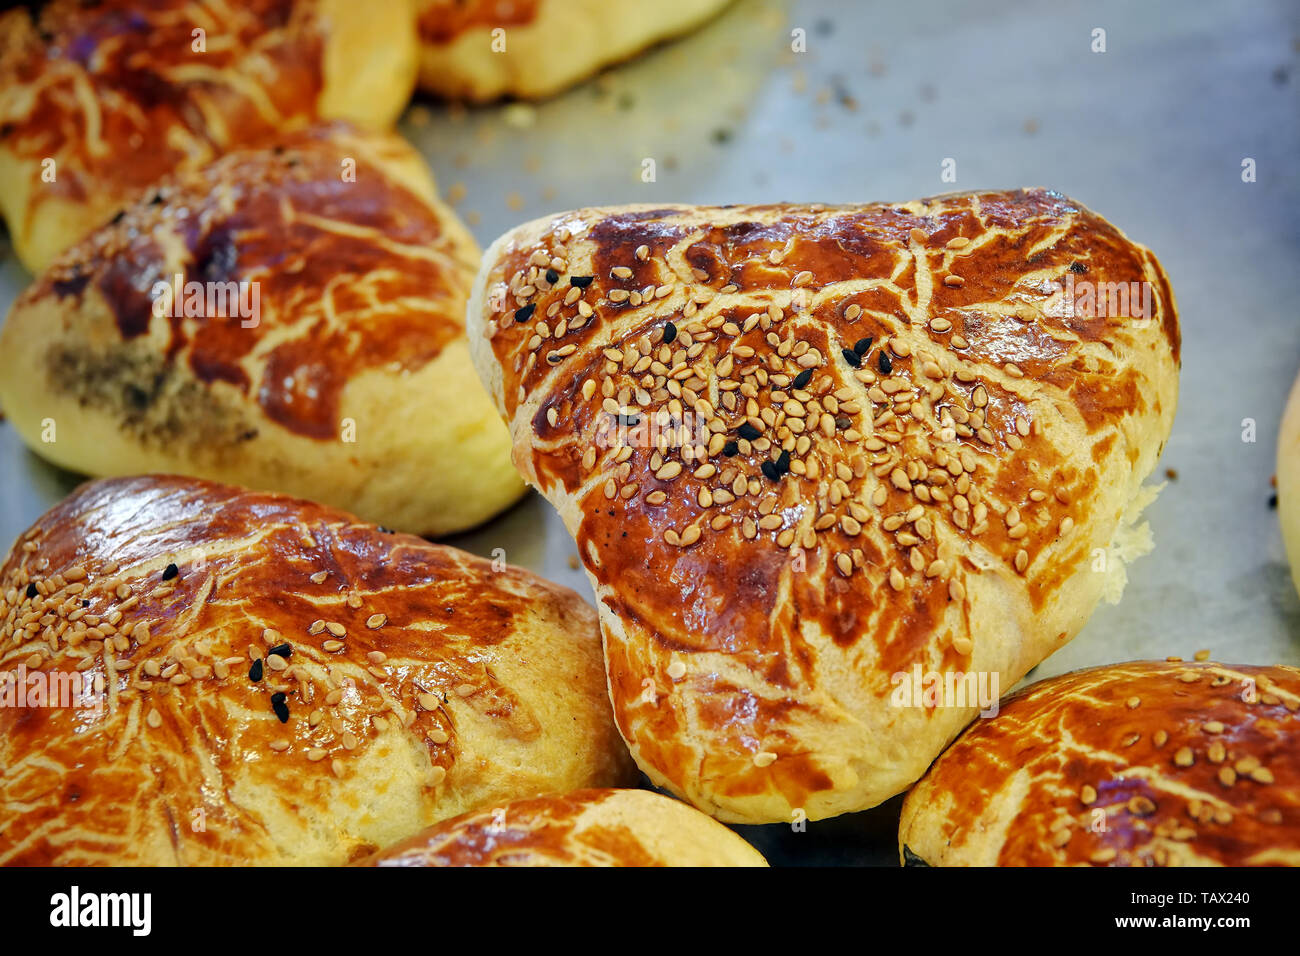 Delicious Savory Pastry Food For Breakfast Snack - Stock Image